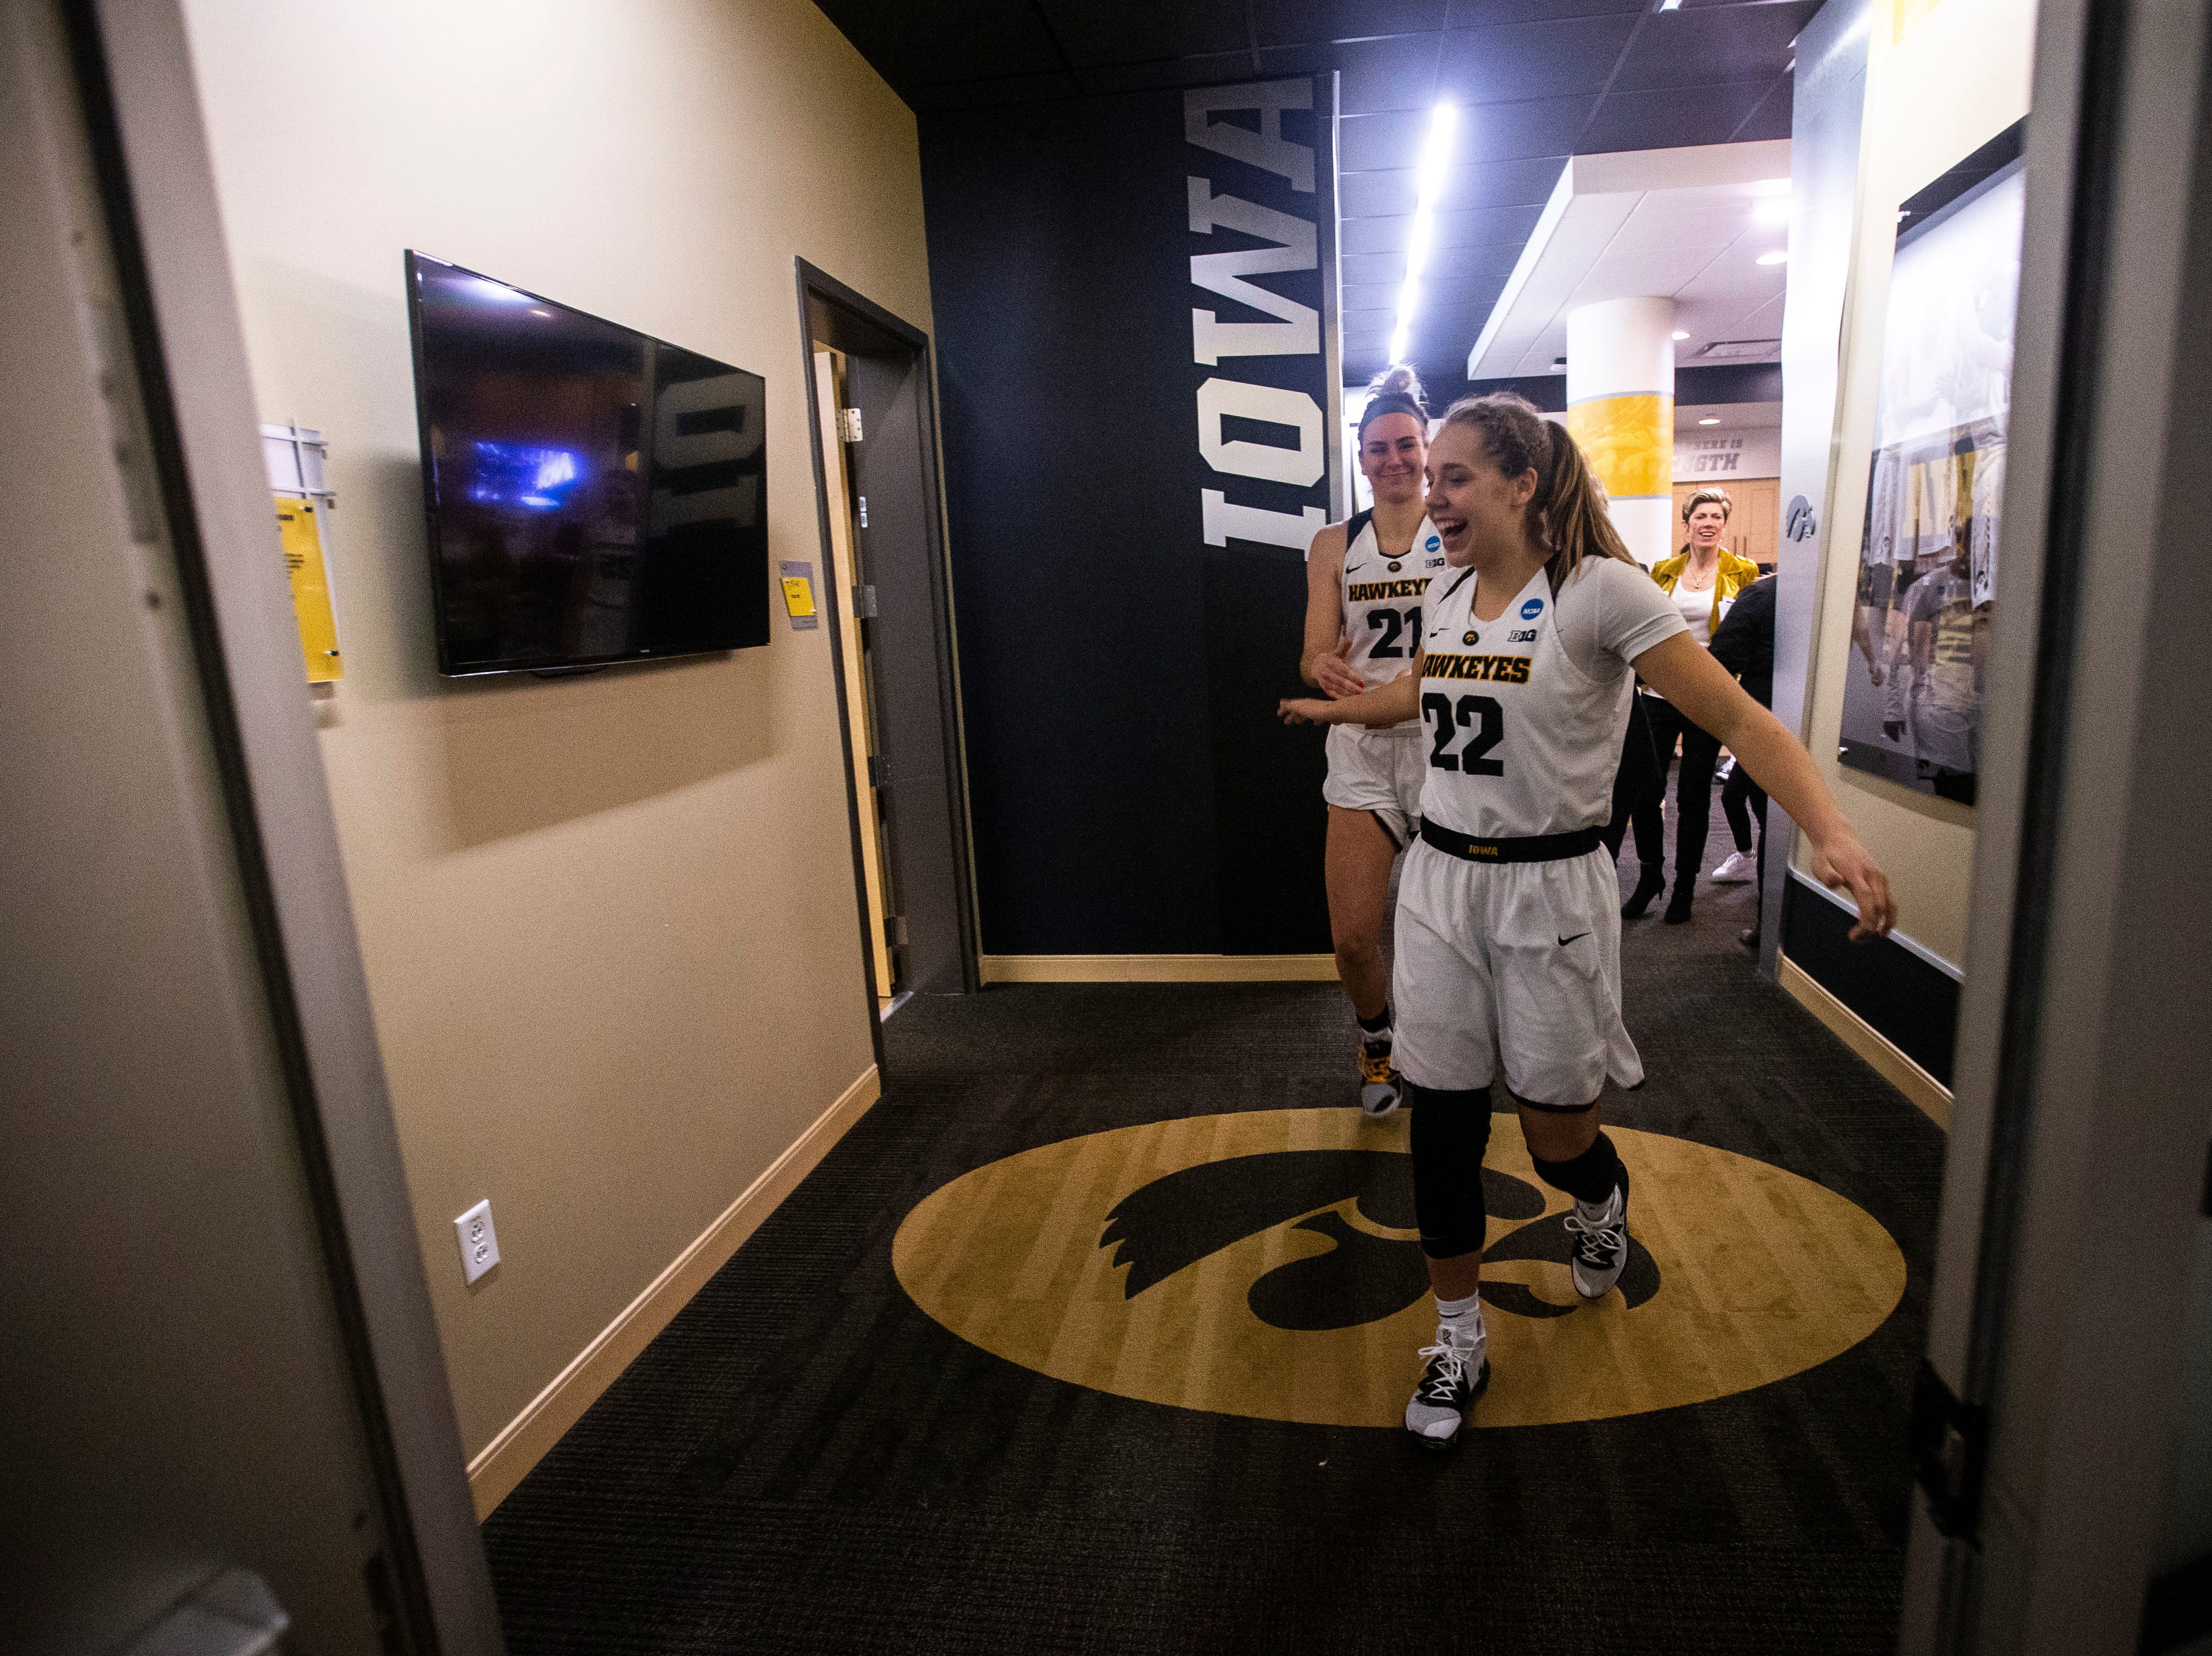 Iowa guard Kathleen Doyle (22) and forward Hannah Stewart (21) head out of the locker room to cut down the nets on the court after a NCAA women's basketball tournament second-round game, Sunday, March 24, 2019, at Carver-Hawkeye Arena in Iowa City, Iowa.